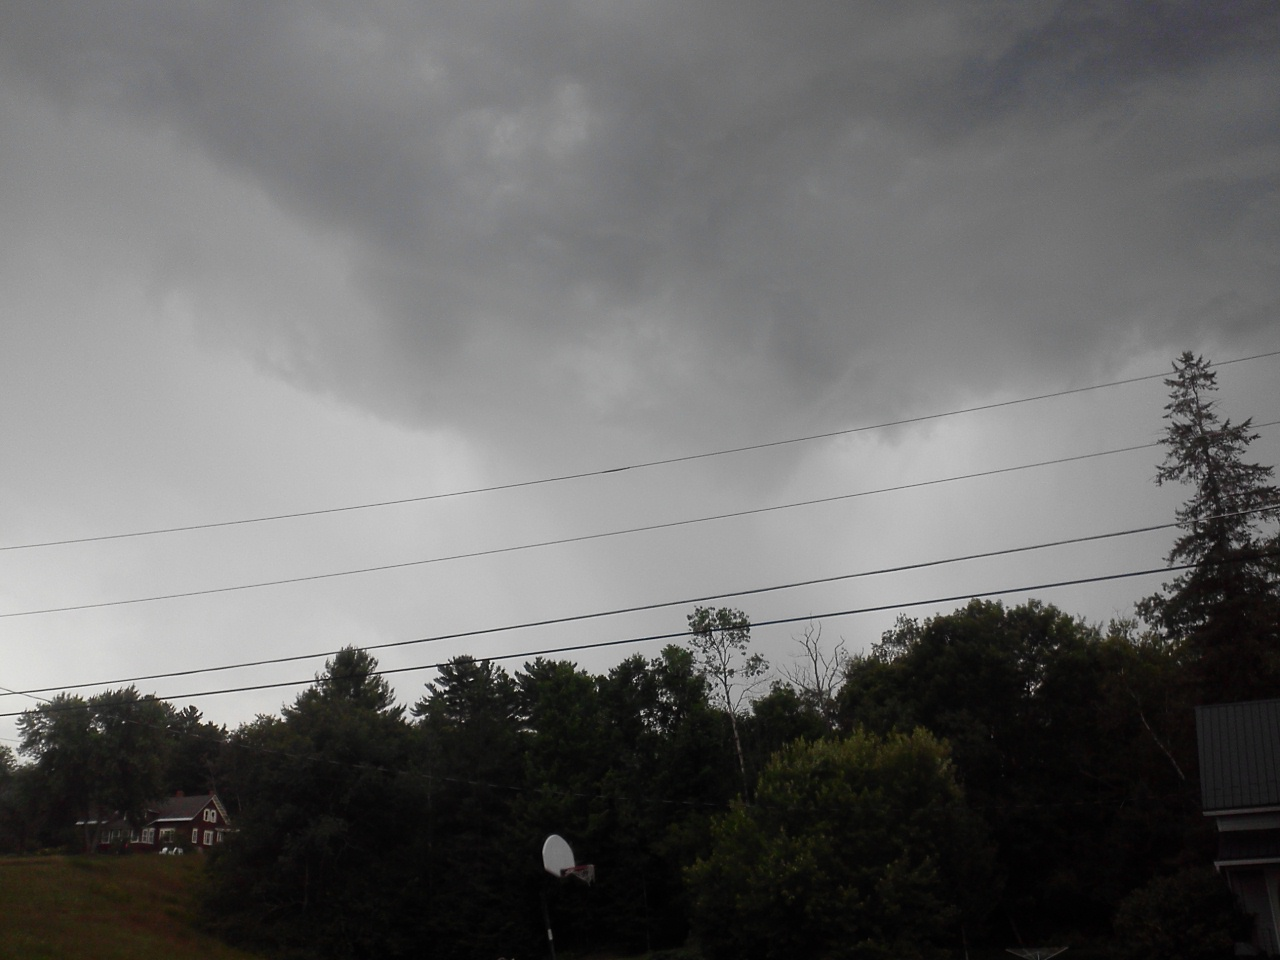 The small but powerfull microburst storm that tore through a circus in my little town